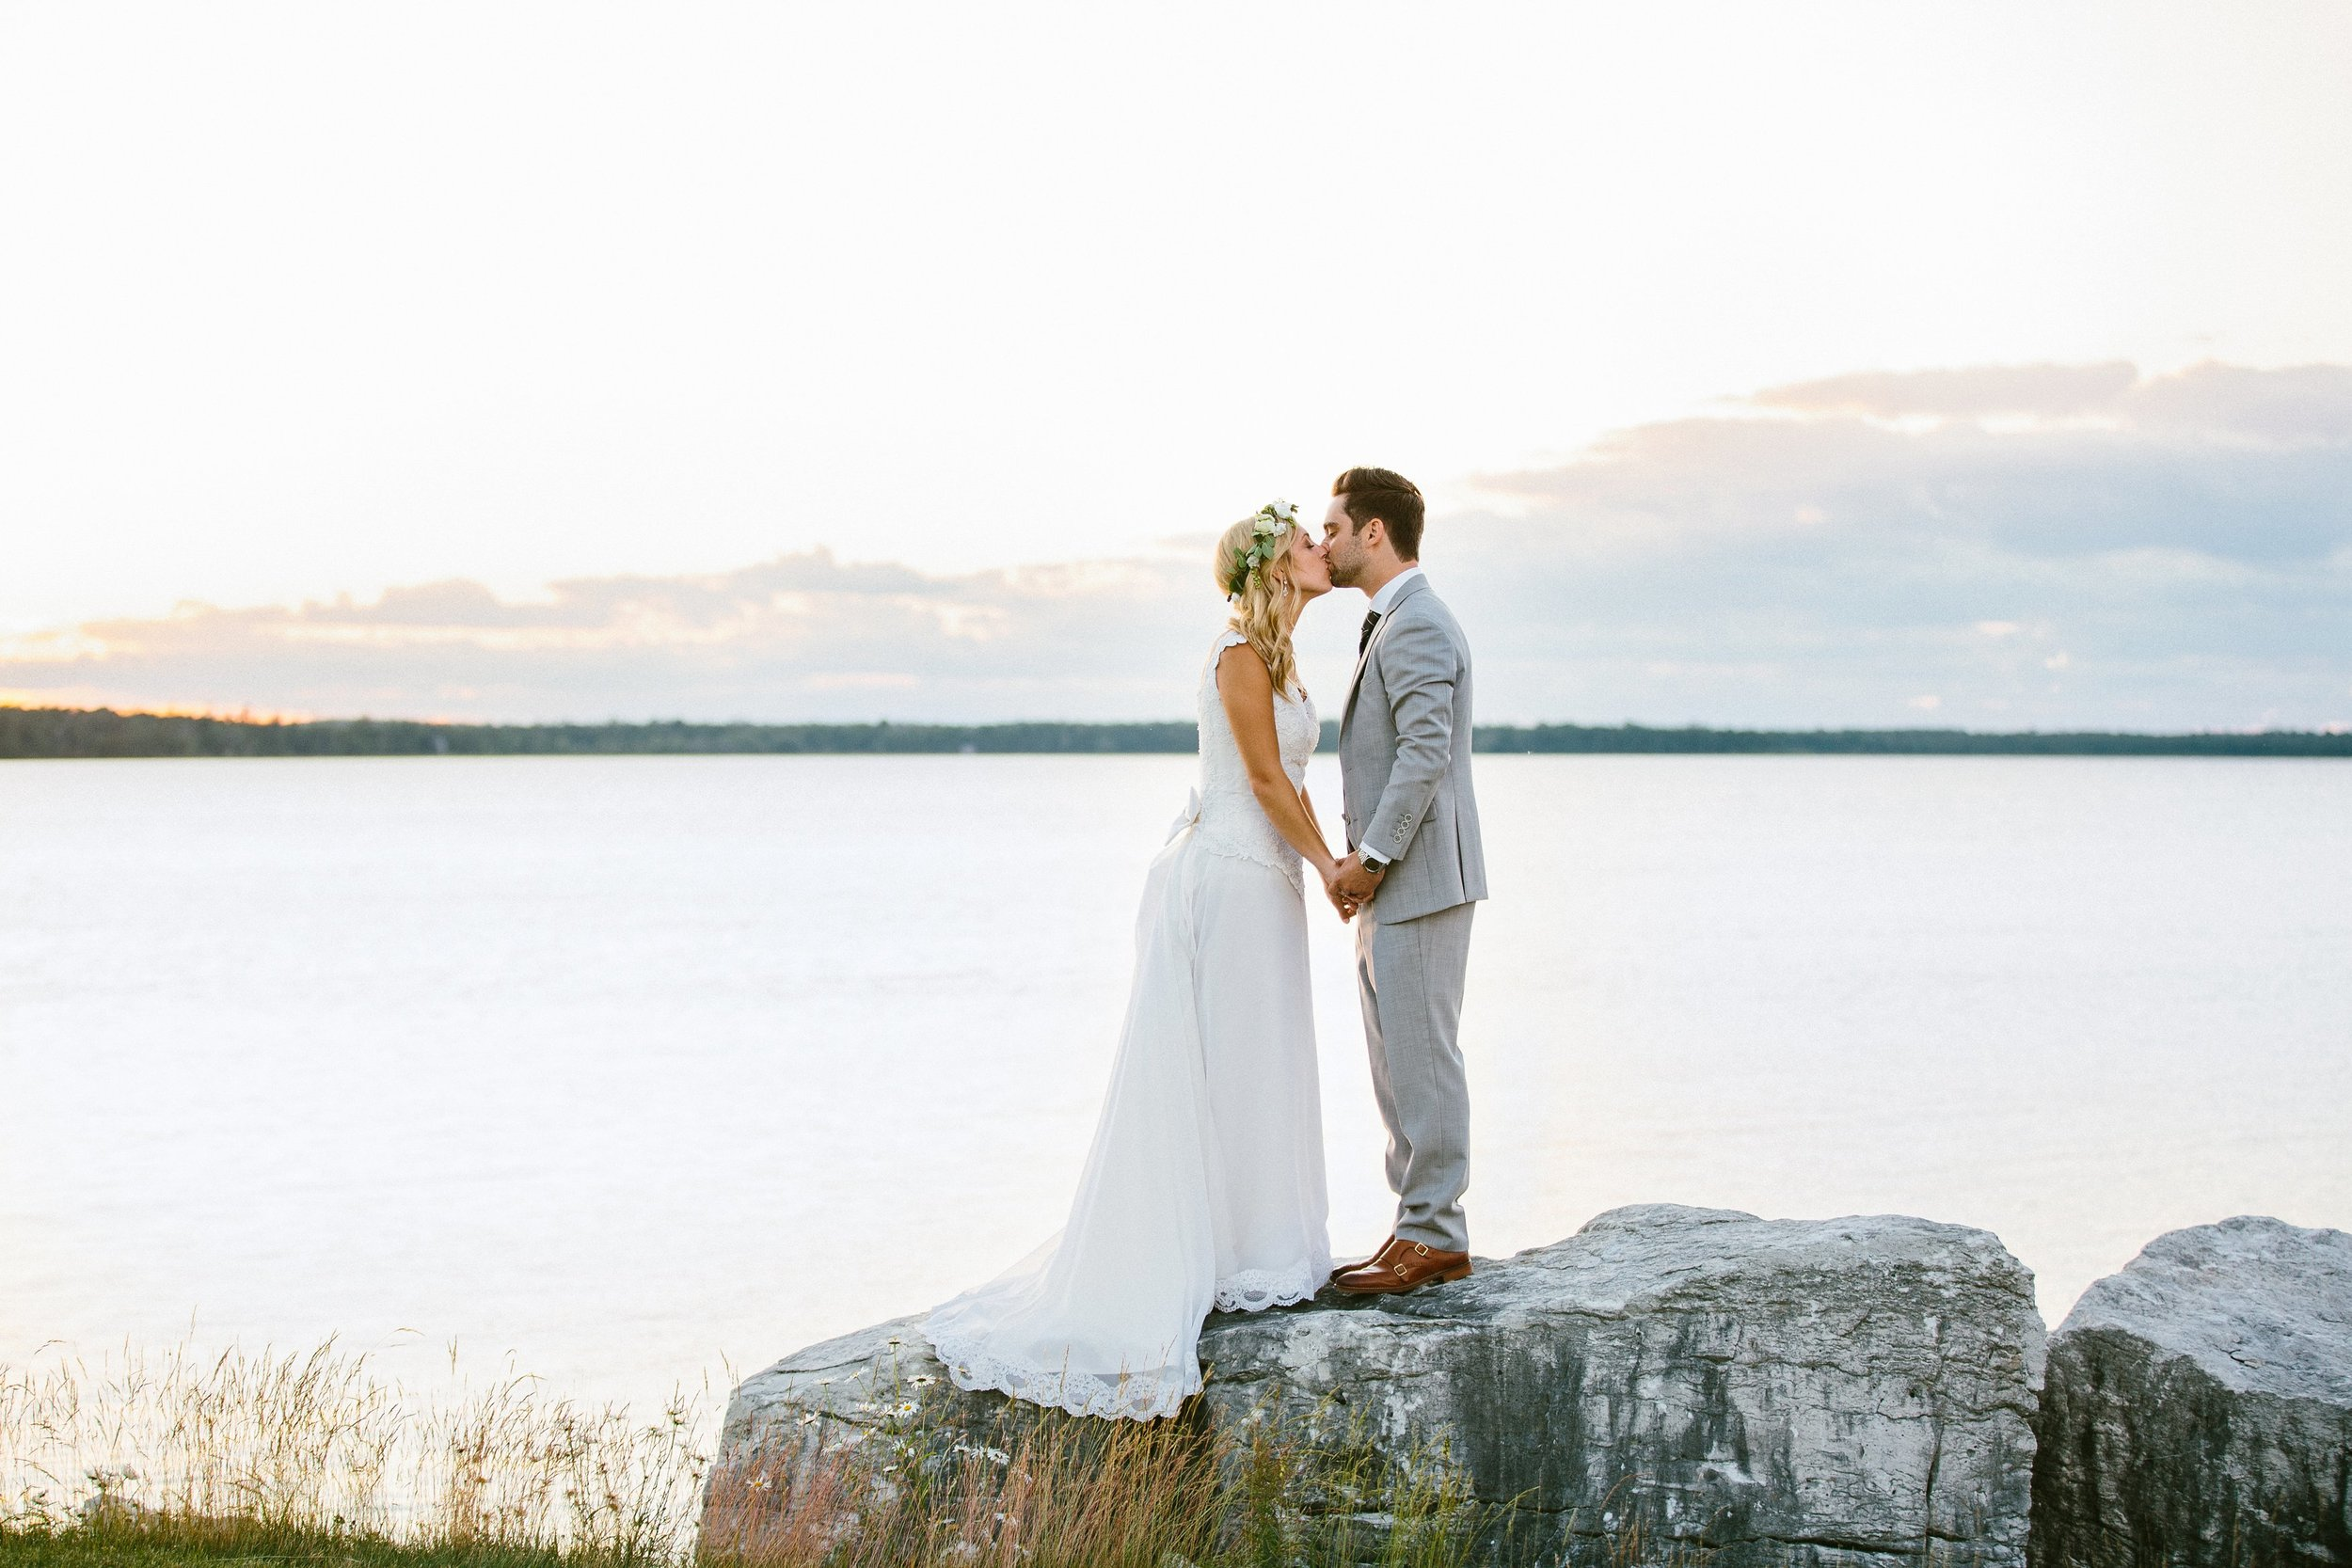 Summer Sunset bridal portraits at the Gordon Lodge WI.jpg